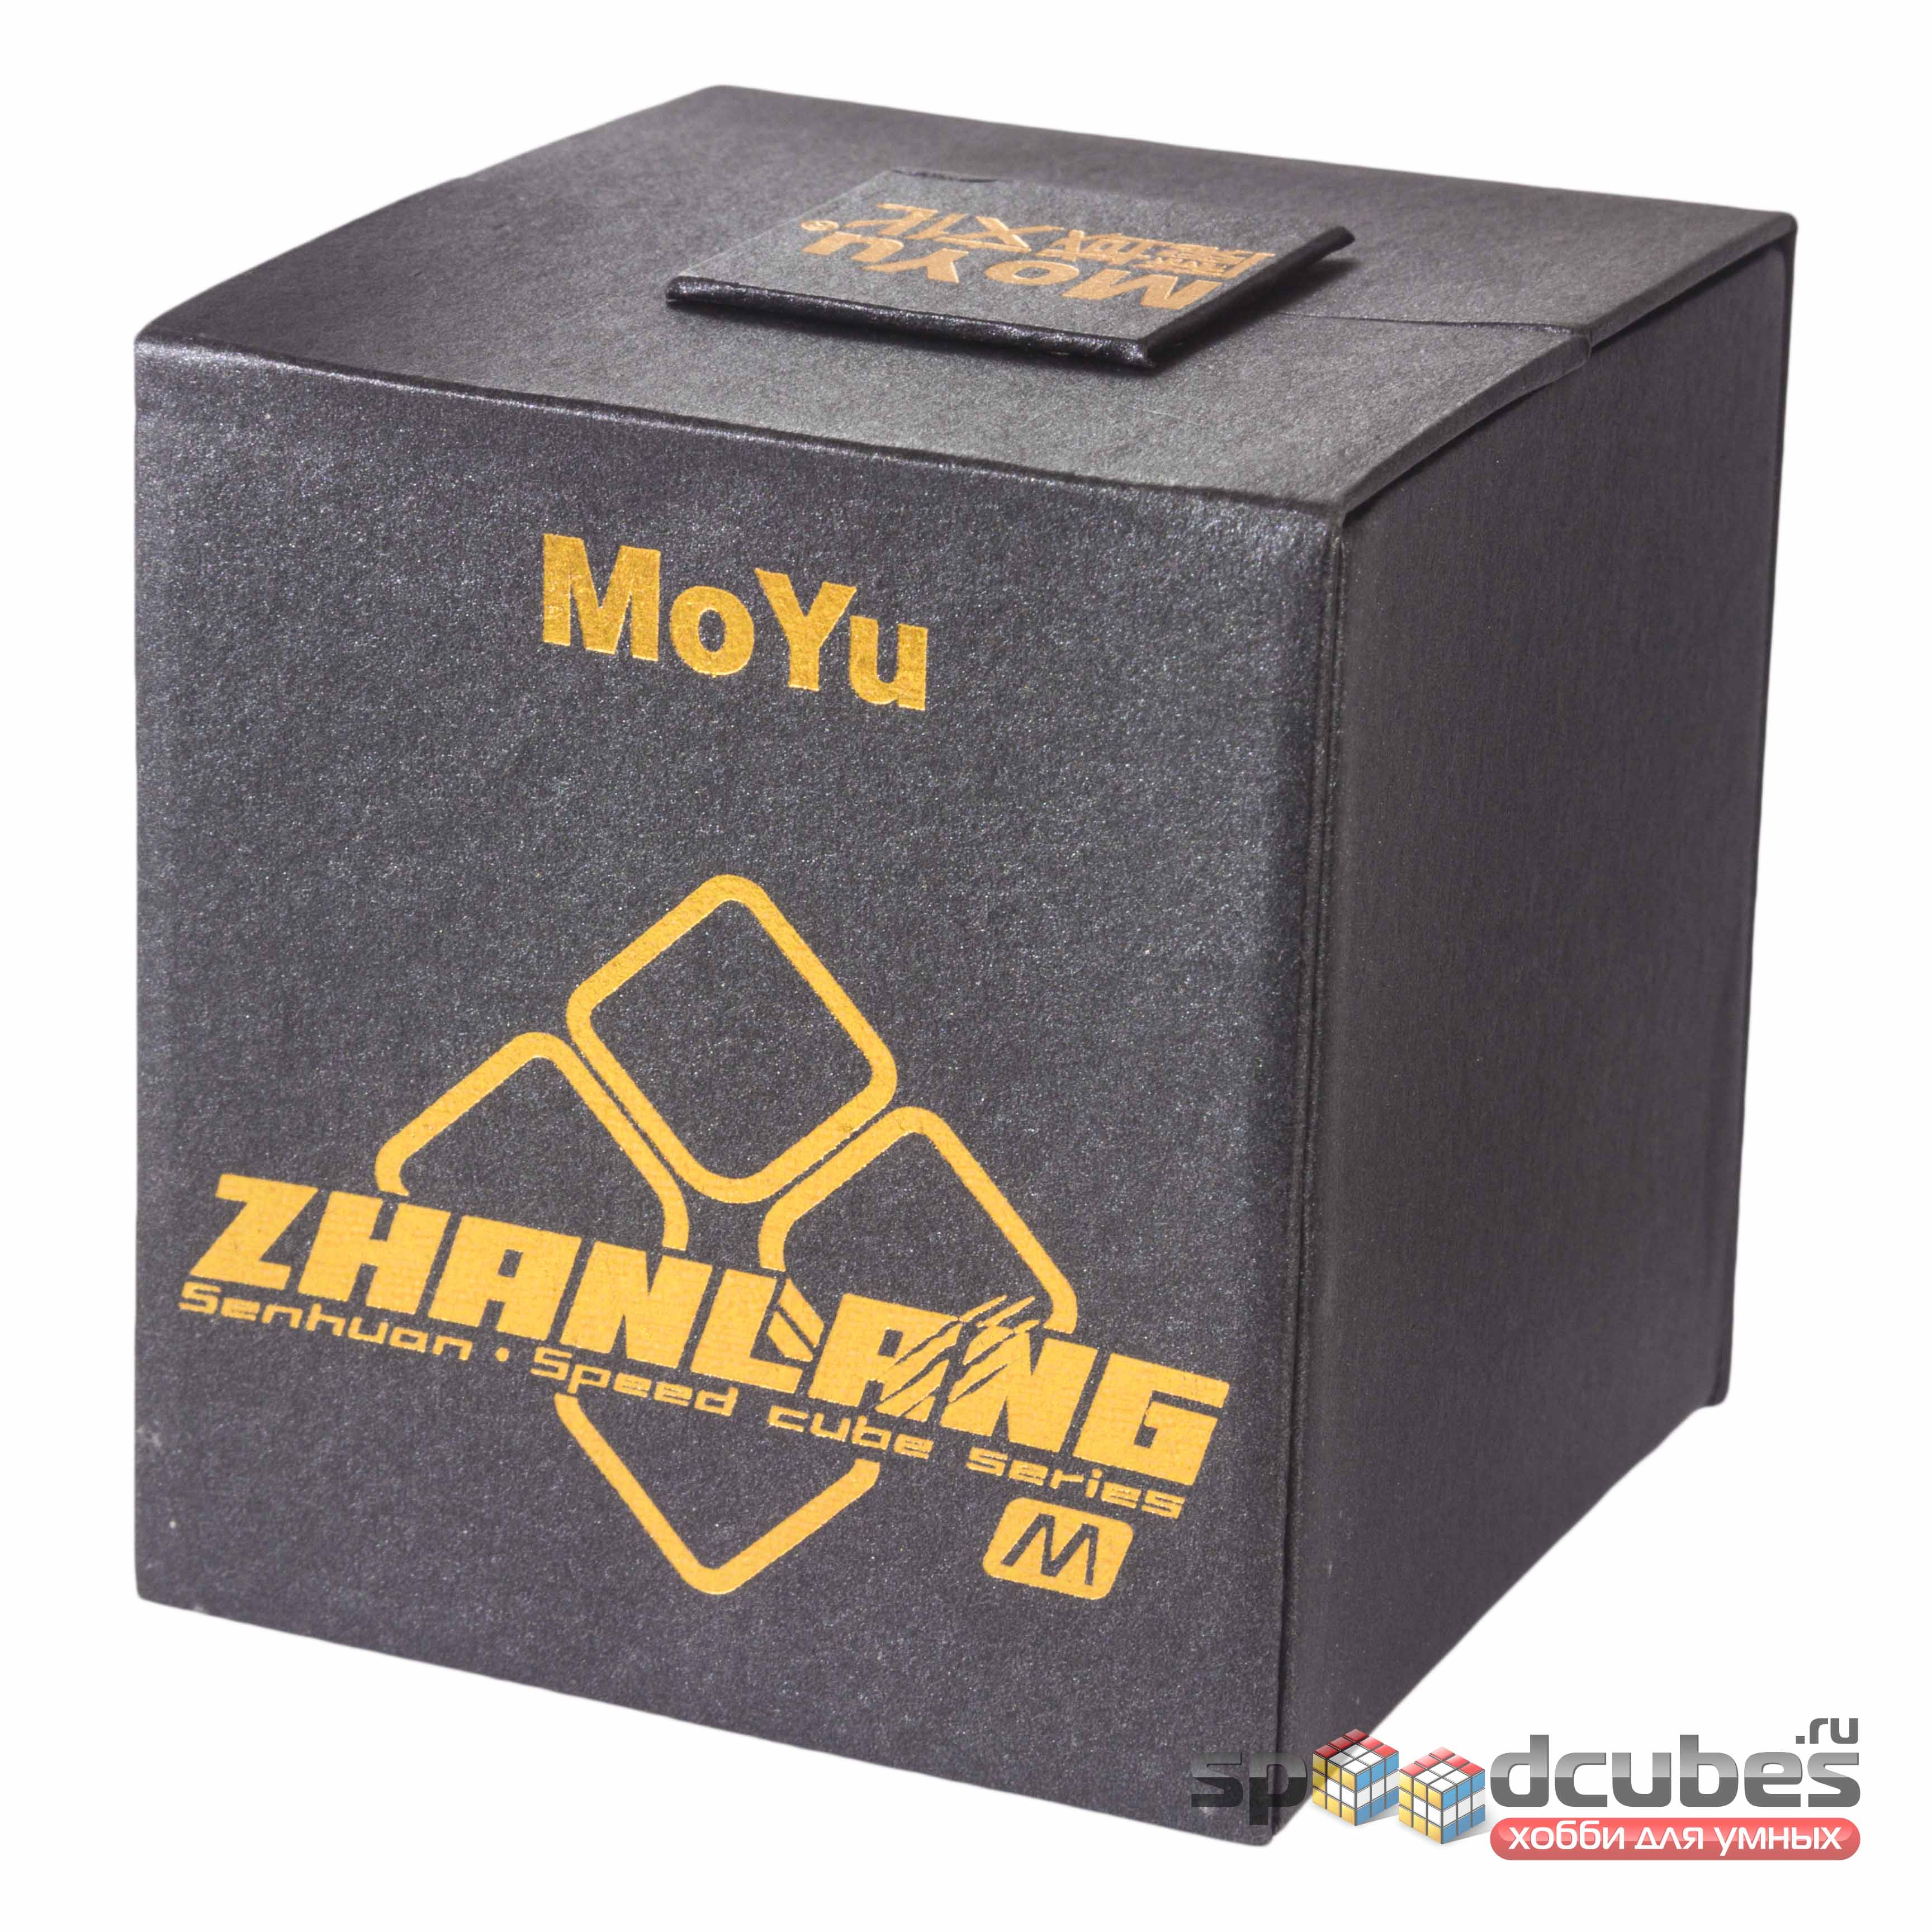 MoYu 2x2x2 ZhanLang M Color 1